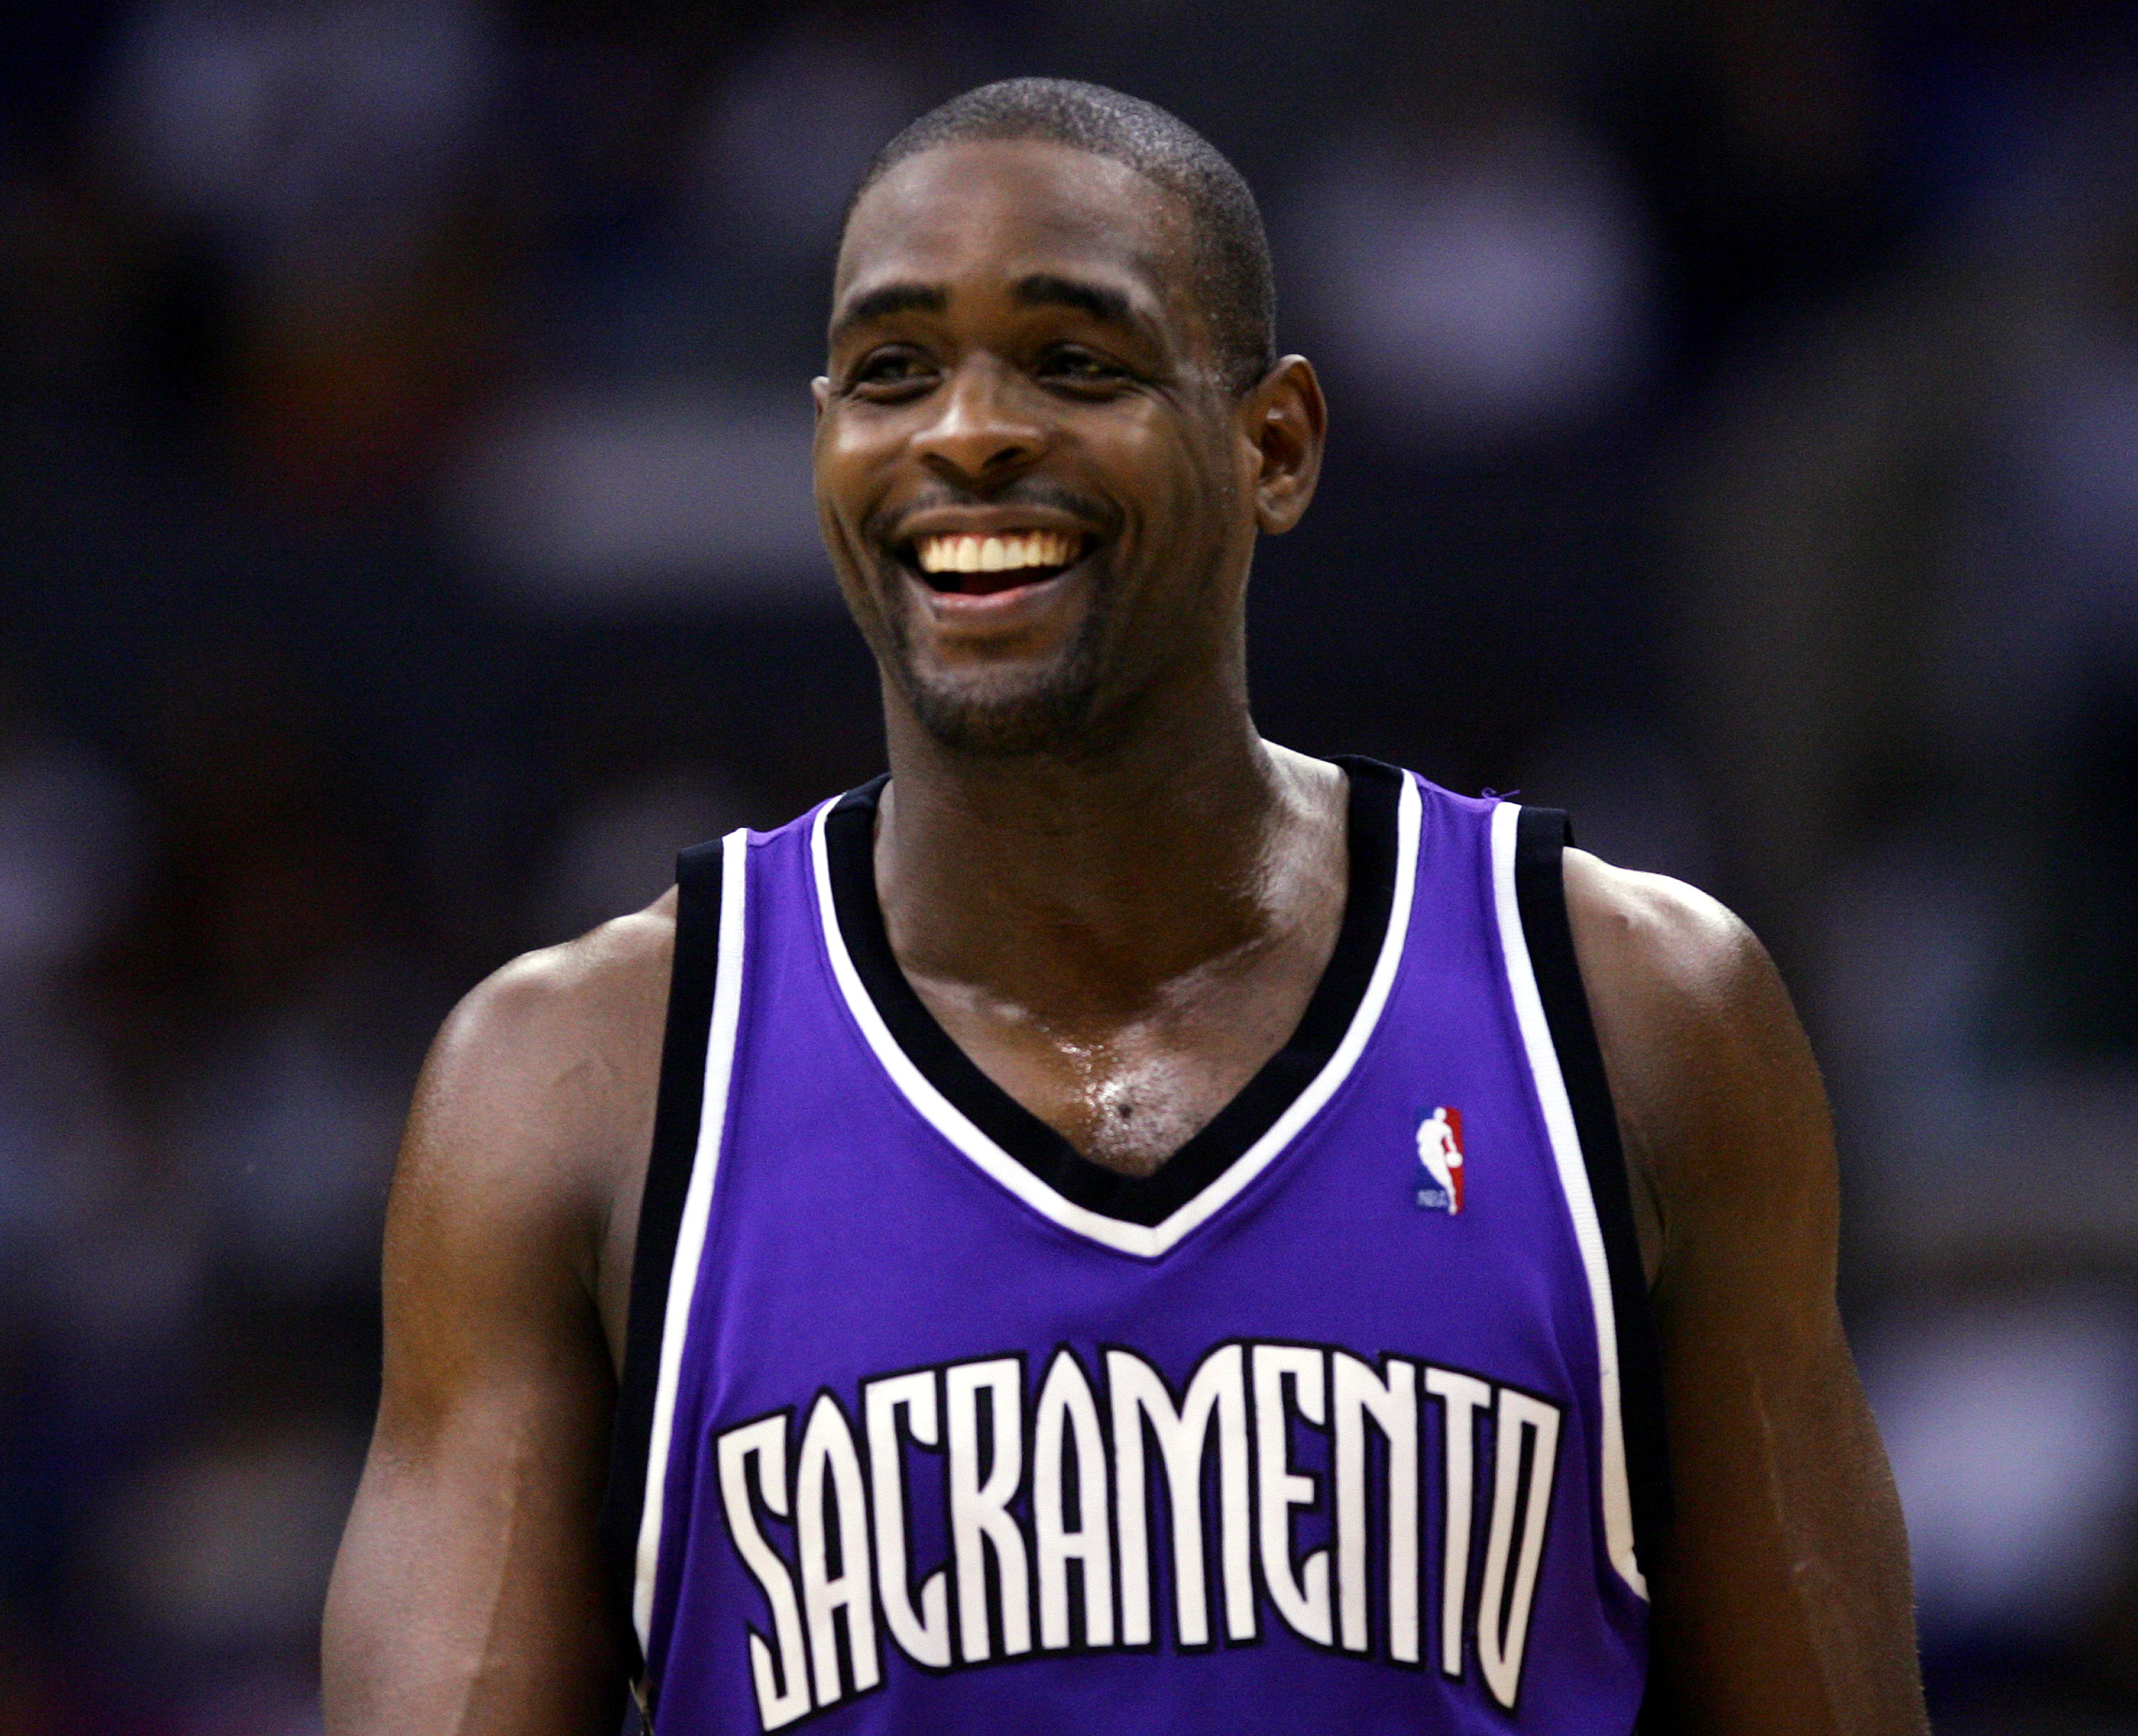 LOS ANGELES - JANUUARY 17:  Chris Webber #4 of the Sacramento Kings laughs on the court during the game against the Los Angeles Clippers on January 17, 2005 at Staples Center in Los Angeles, California.  The kings won 89-83.  NOTE TO USER: User expressly